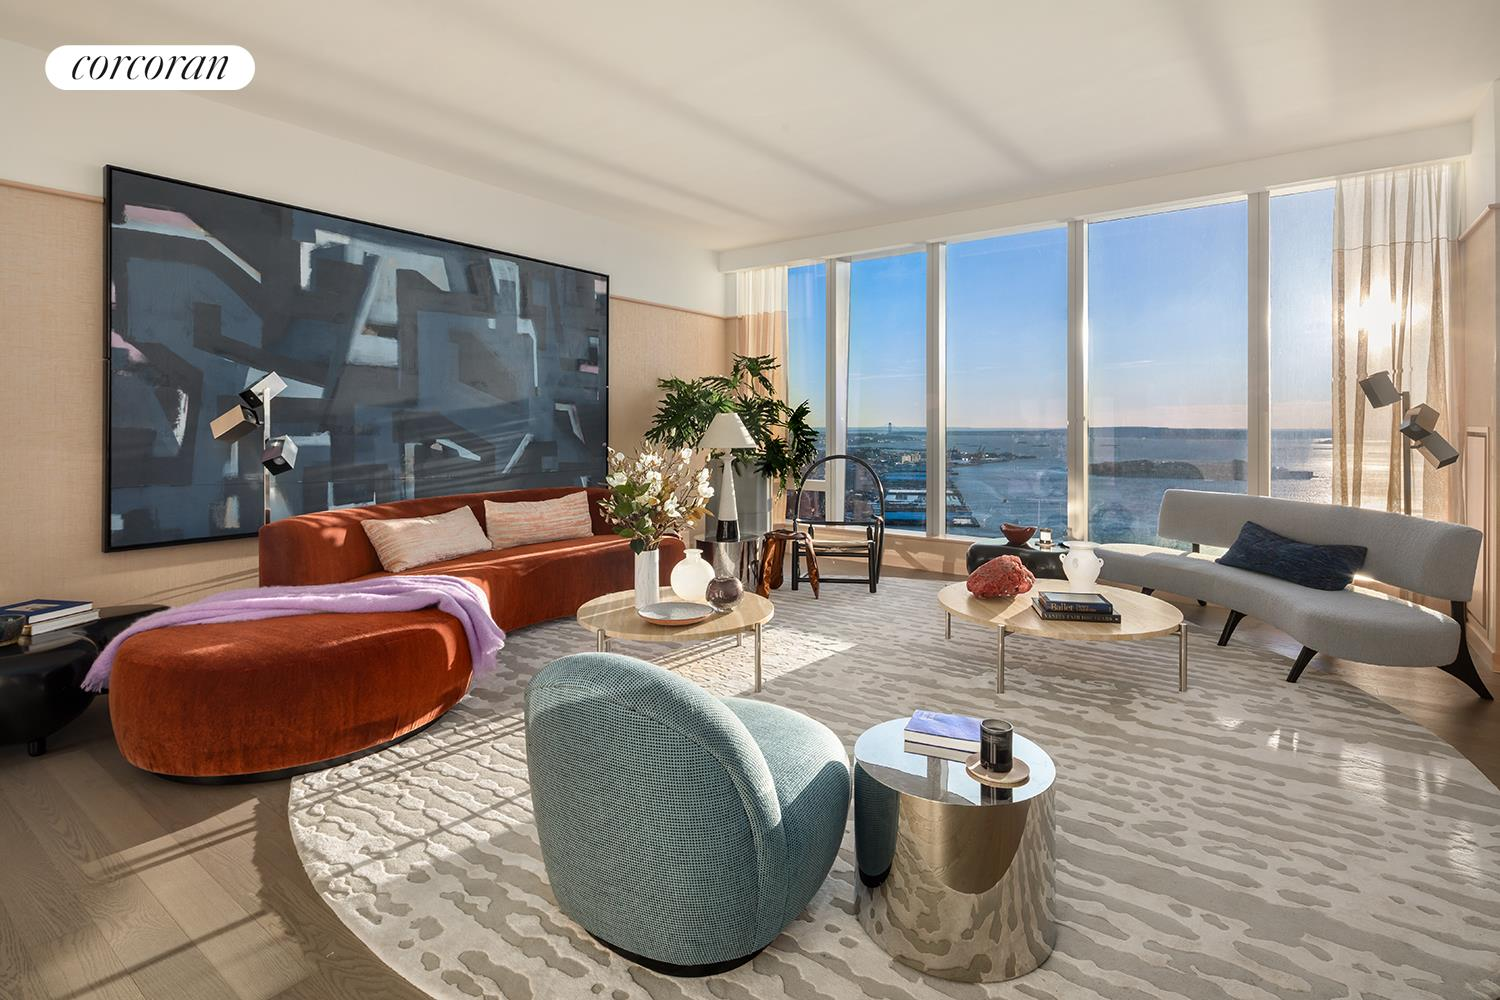 ONE MANHATTAN SQUARE OFFERS ONE OF THE LAST 20-YEAR TAX ABATEMENTS AVAILABLE IN NEW YORK CITY  The Skyscape Collection, featuring Residence 66J, is a home in the sky.  This generous 2,347 square foot triple exposure 3 bedroom, 3.5 bath residence is designed by Meyer Davis and features 270 degree views of the Lower East Waterfront, New York Harbor, Financial District and Midtown Manhattan.  Astonishing panoramic views from South West and North West corner living room and dining room.  Windowed gourmet kitchen with a breakfast bar, pantry closet, premium Miele and Subzero appliance package with a double oven plus speed oven, built-in whole-bean coffee system, wine fridge, dishwasher and externally fully vented kitchen hood.  Corner Master Bedroom suite with side-by-side walk-in closets, luxuriously appointed windowed 5 fixture ensuite bath with a steam shower, Wetstyle soaking bathtub with custom stone surround, radiant floor heating and a separate water closet.  The second and third bedrooms are thoughtfully appointed with en-suite baths with imported stone and custom finishes.  This residence comes equipped with a side-by-side, fully vented washer and dryer.  A gorgeous powder room with a Boffi pedestal sink and Covelano marble polished stone accent wall and floors completes this magnificent home.    New York's premier development company Extell, has collaborated with a team of world-class talent to create an icon that reflects the quality, choice and excellence that distinguish Extell properties- One Manhattan Square.  Perfectly situated along the Lower East Side Waterfront, this 800-foot-tall striking glass tower offers one to three-bedroom condominium residences that feature epic river and skyline views and a lifestyle enhanced by over 100,000 square feet of indoor and outdoor amenities. One Manhattan Square presents the most valuable waterfront living opportunity in Manhattan with one of the last available 20-year tax abatement in New York City.  Meyer Davis, th